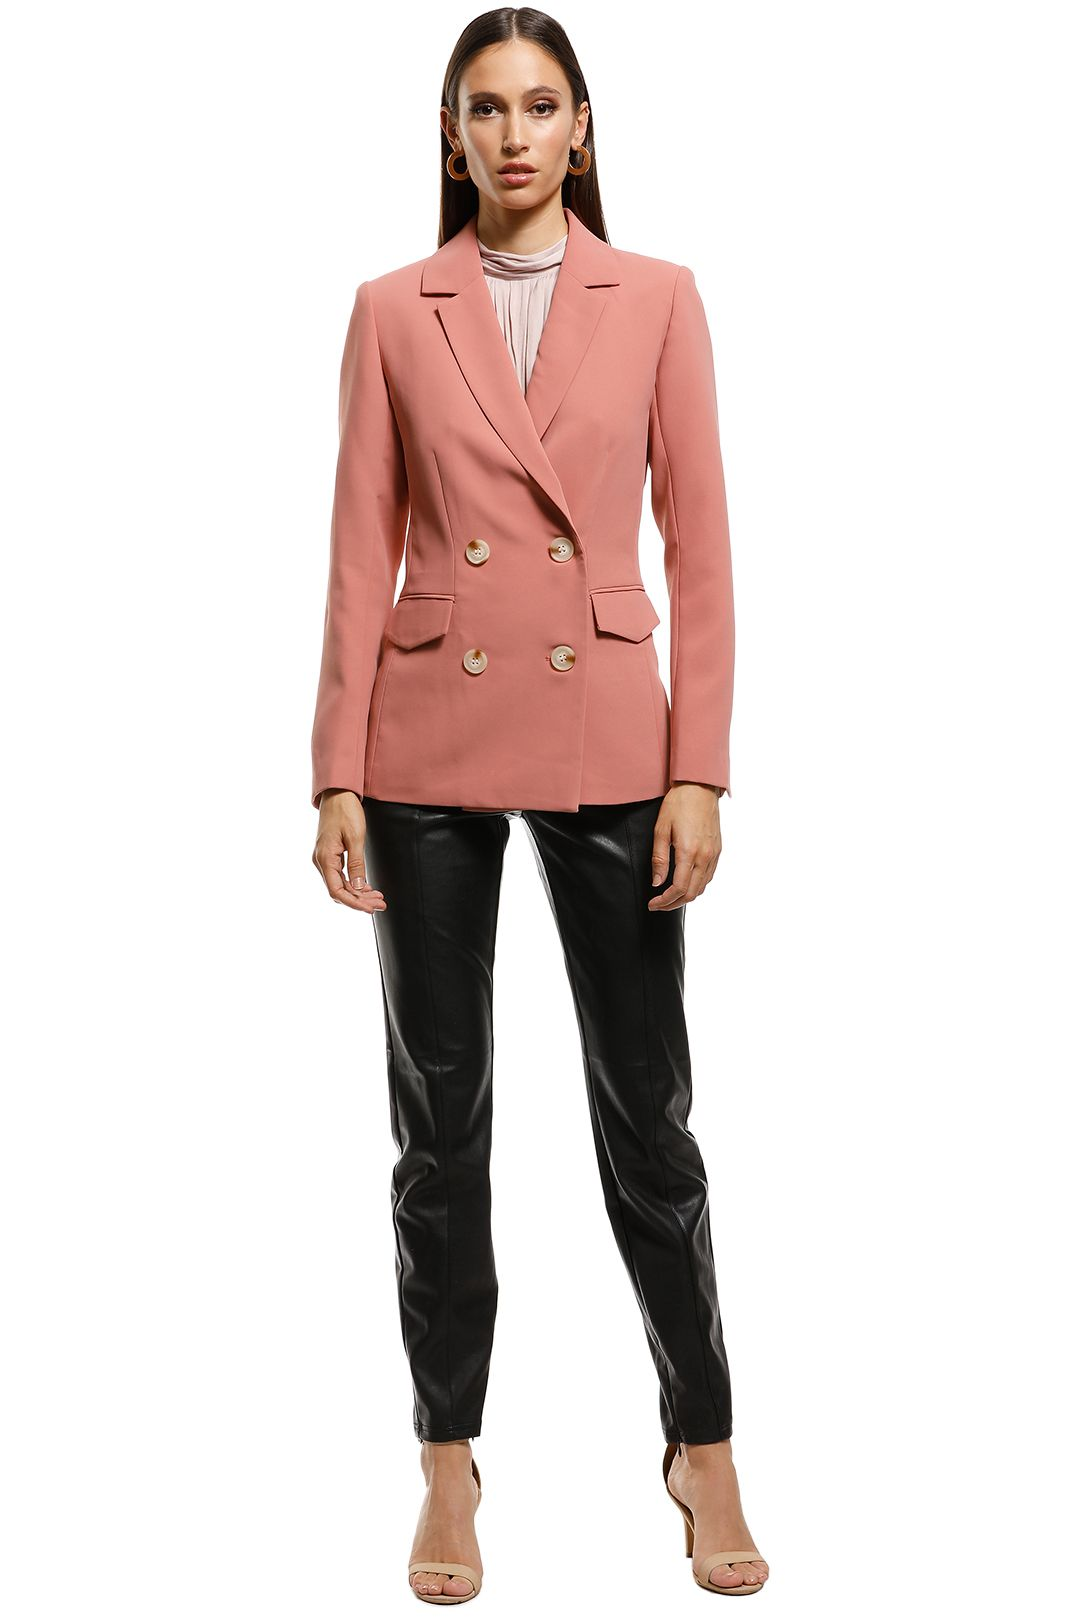 Rodeo Show - Theresa Blazer  - Blush - Front